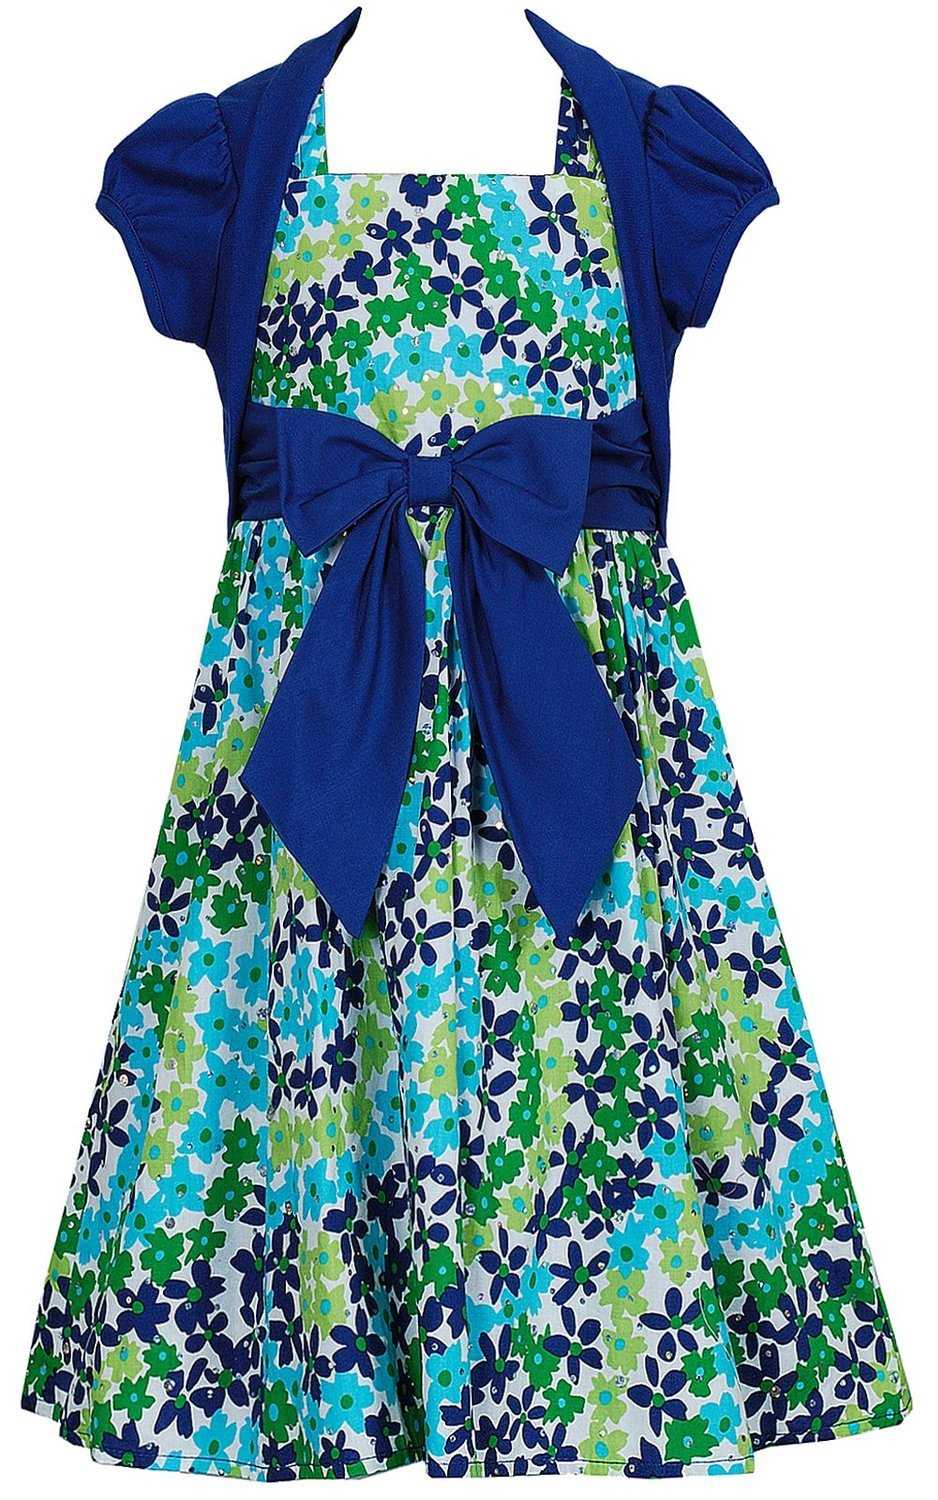 Bloome Girl Plus Size Blue/Green Bow Front Sparkle Floral Print Dress/Jacket Set